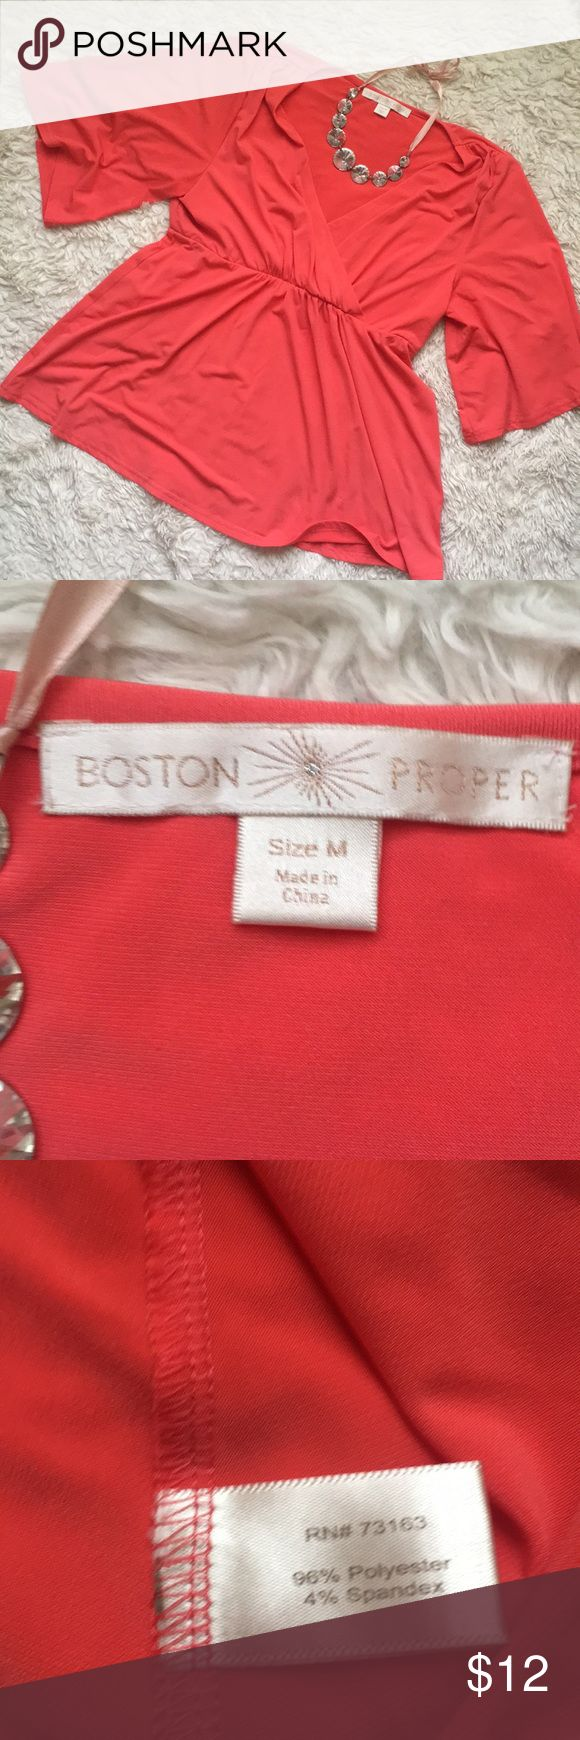 Boston Proper Peach Blouse Perfect for Spring occasions! This Boston Proper blouse is stretchy material with a defining waist and flowing sleeves. It has a deep V neckline and sleeves land just above the elbow. ✨ Open to offers! Boston Proper Tops Blouses